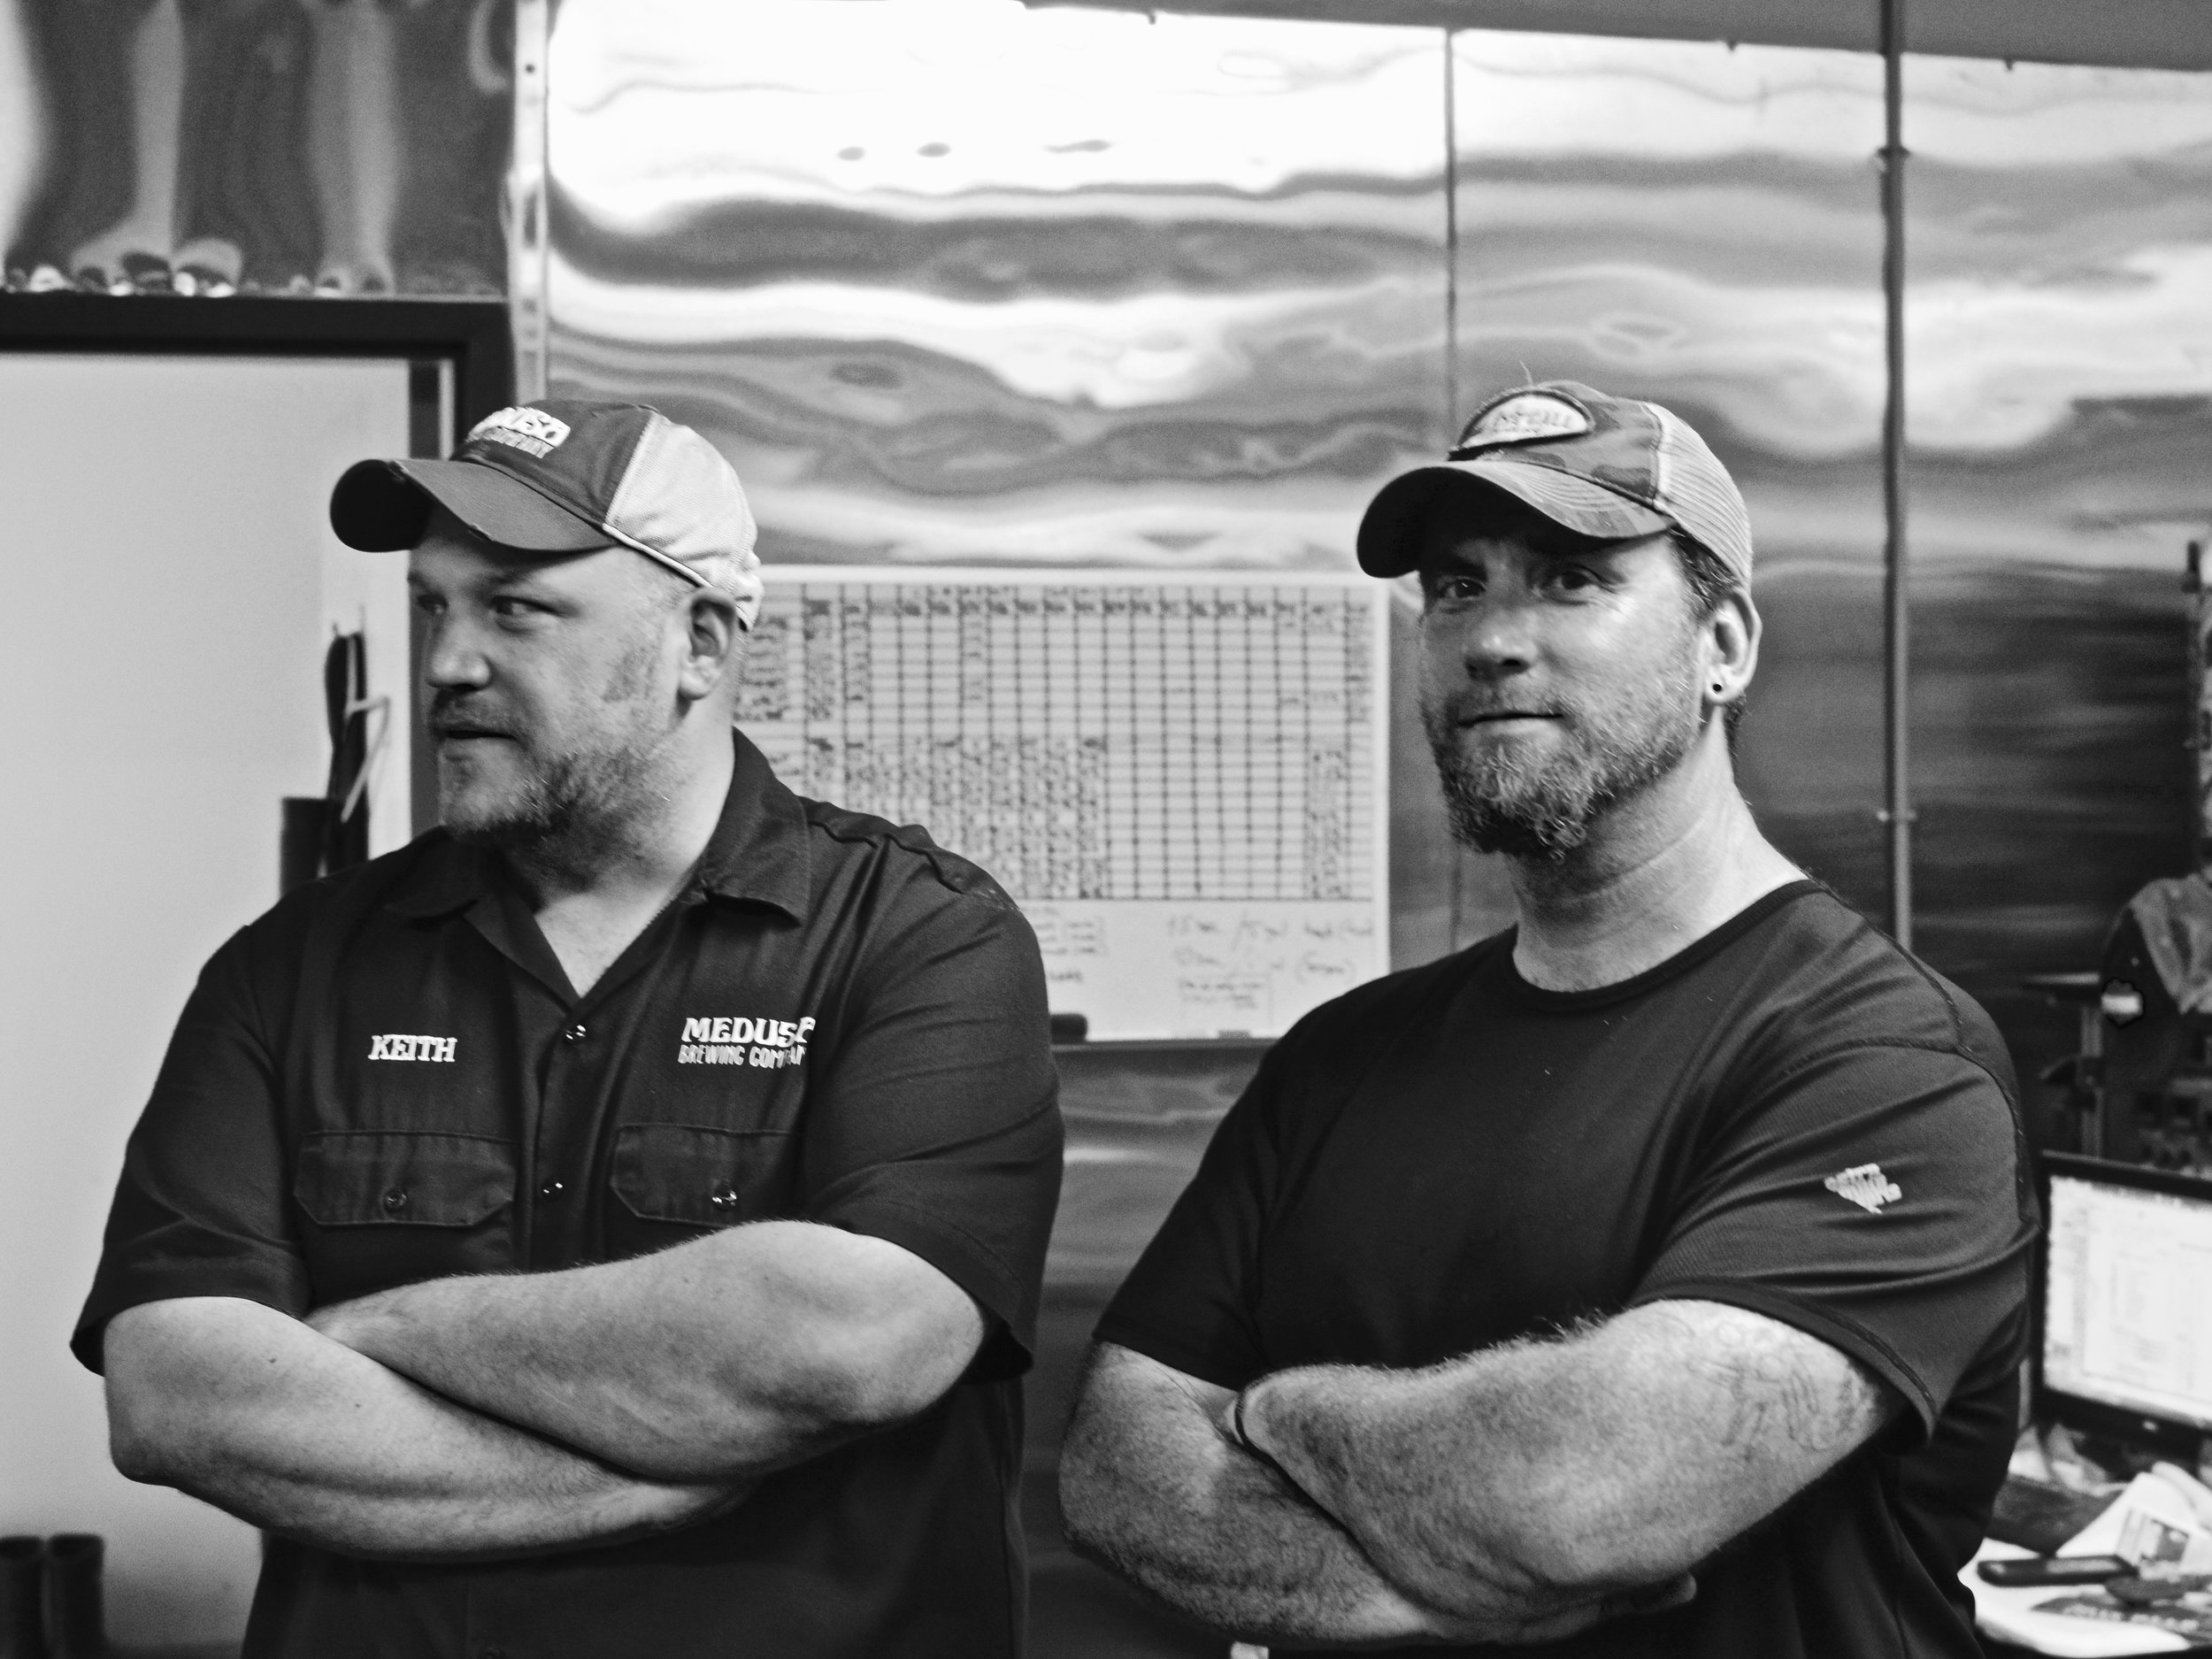 Medusa Brewing Co.'s Co-owner and Head Brewer, Keith Antul (L), and Hop Head, Dave Pappas (R), kick off the  Black Ale Project  on Medusa's 7BBL brewing system.    Photo by Medusa Brewing Company